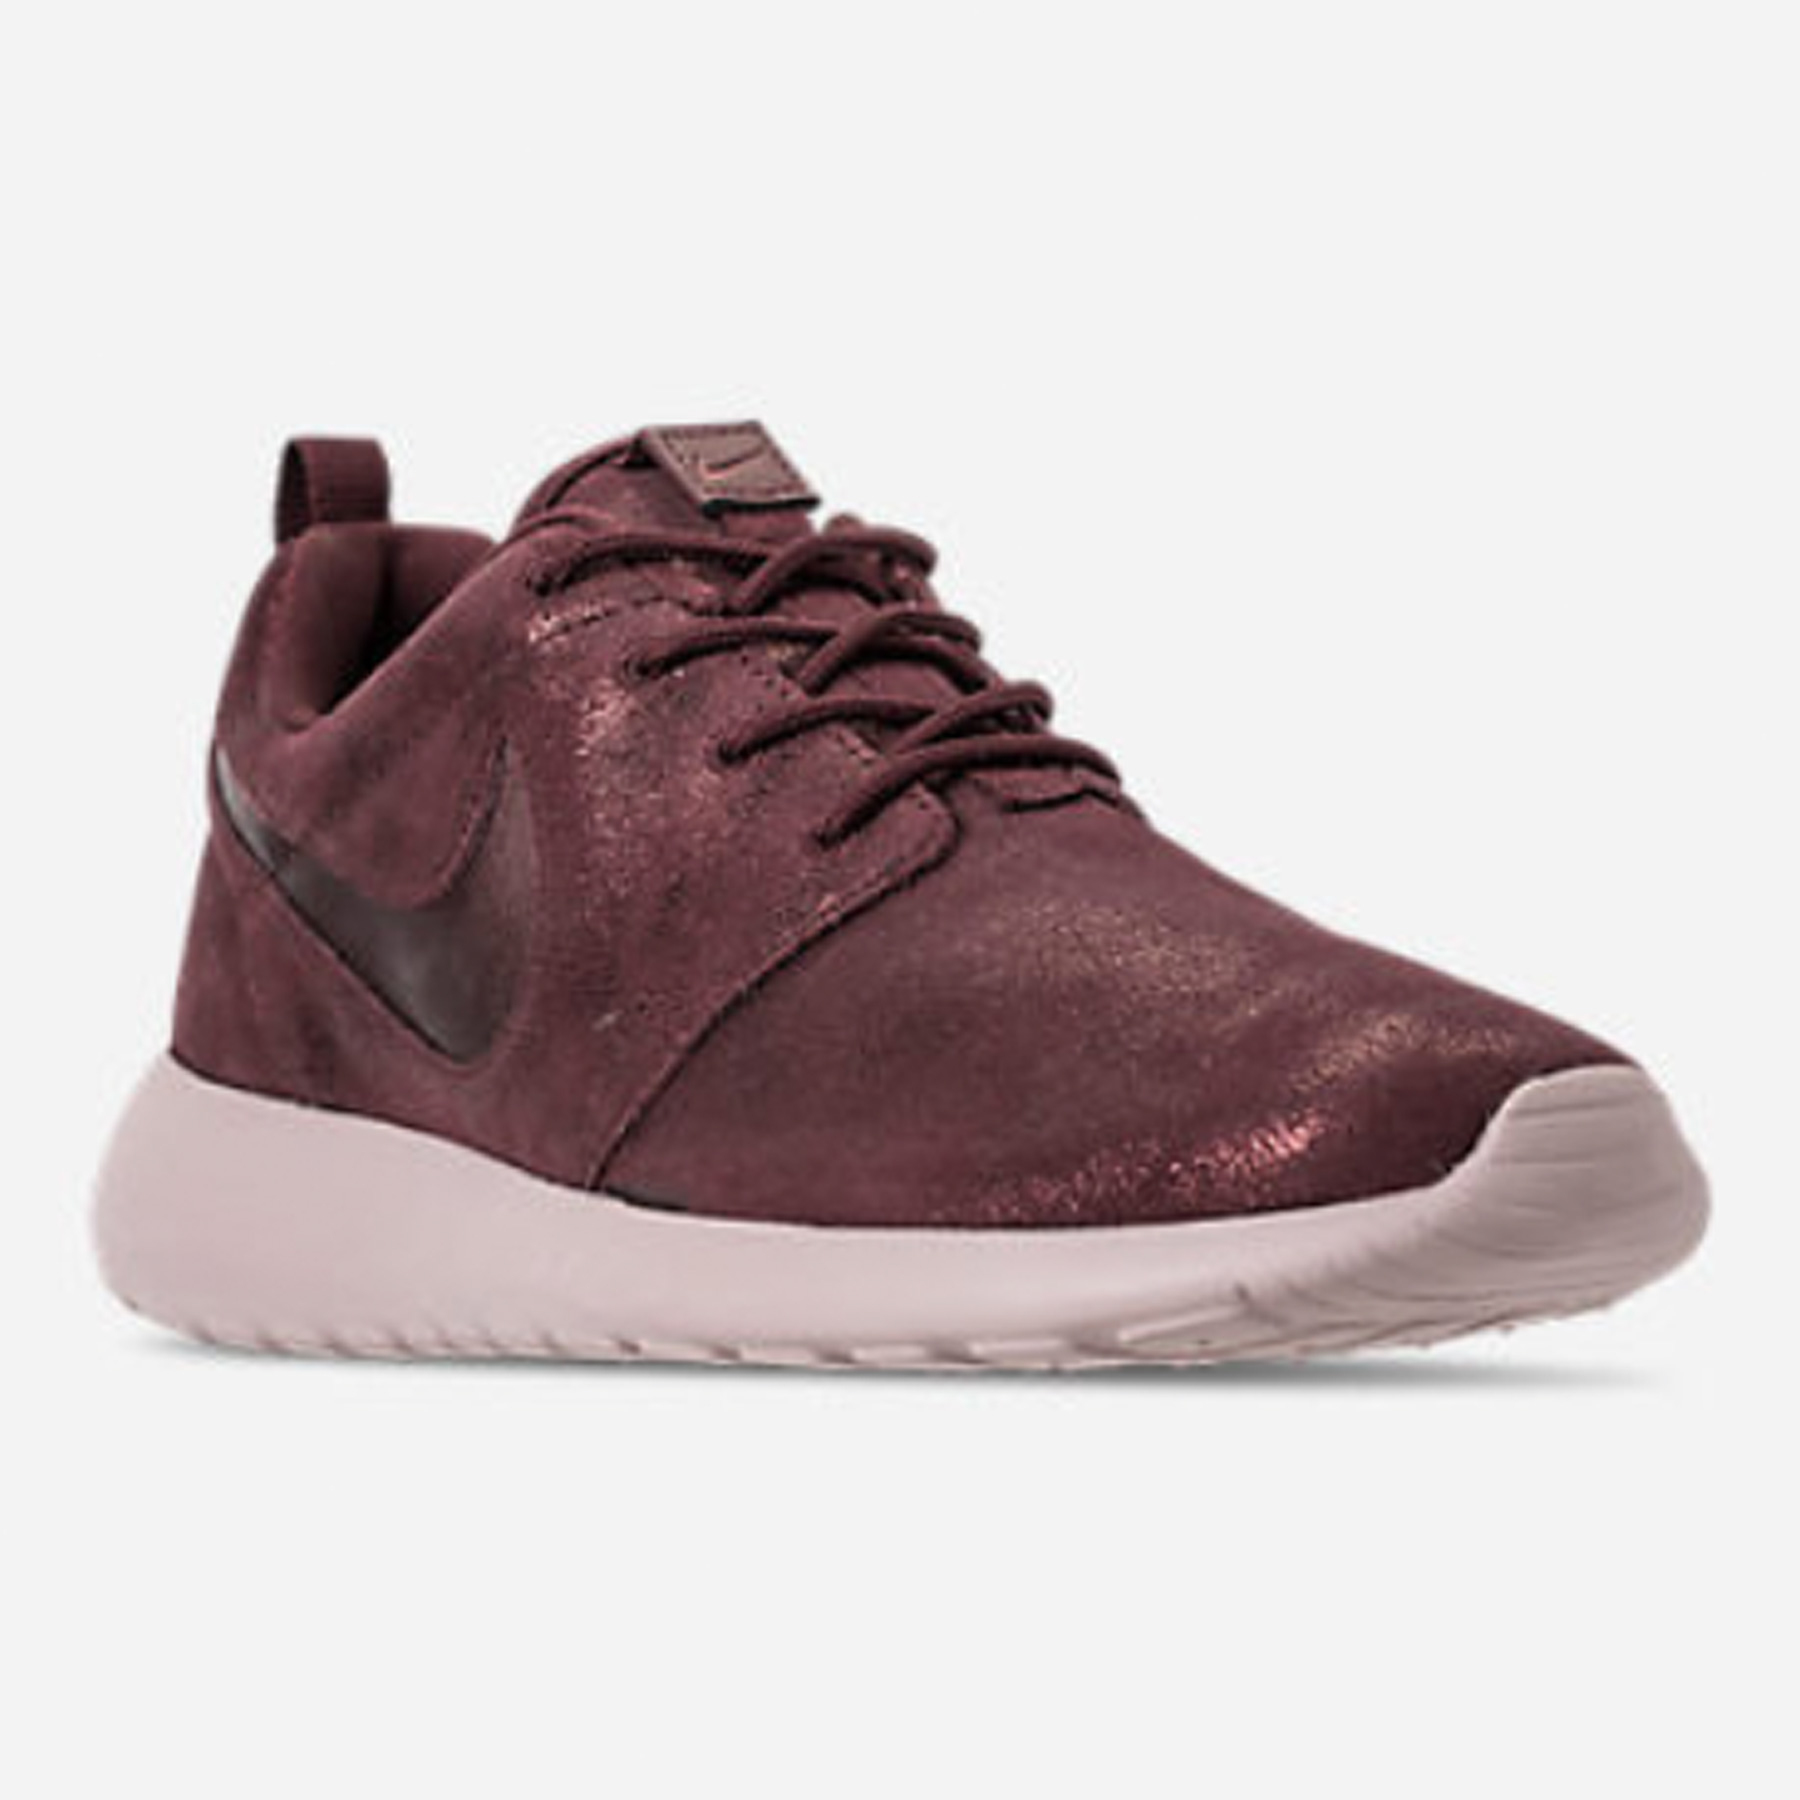 950be7aec These will sell out!! Head over to FinishLine.com where you can order Nike  Women's Roshe One Premium Shoes ...